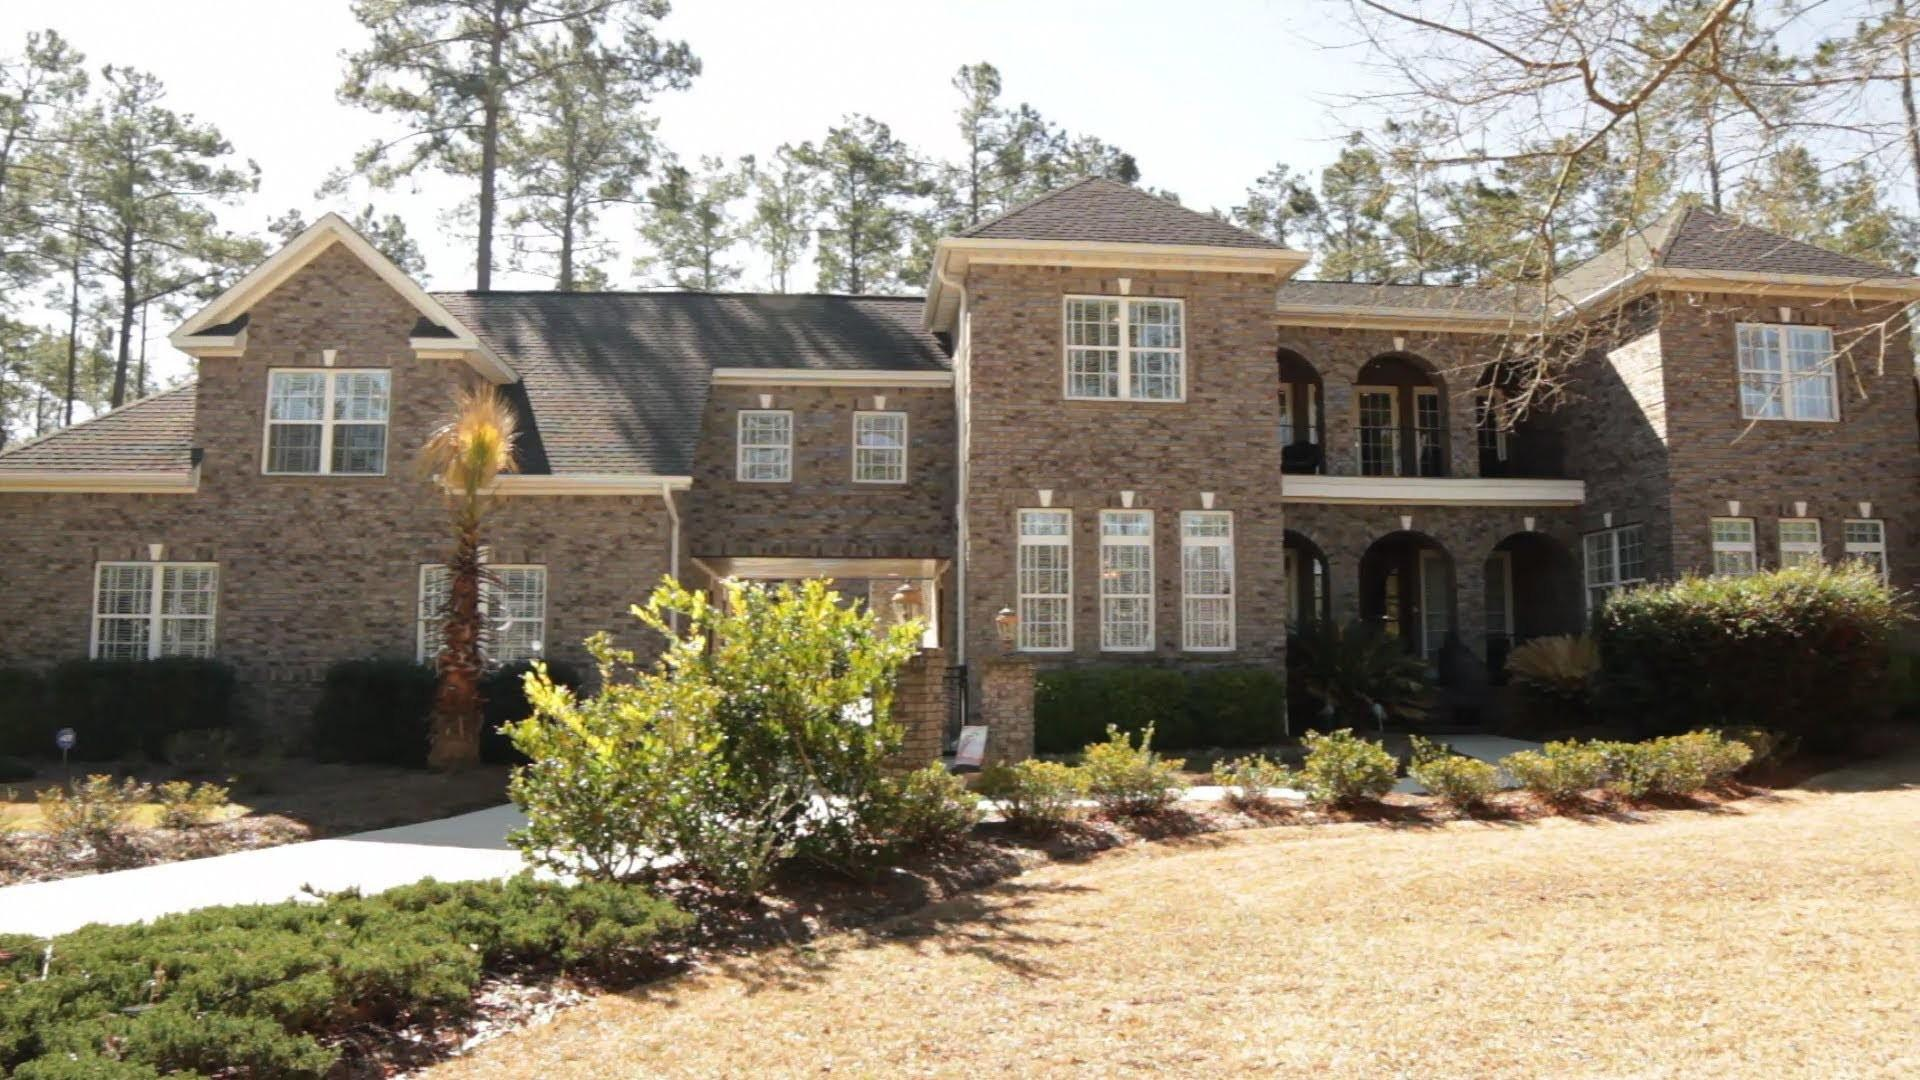 Myrtle Beach Real Estate Multi Generational Home